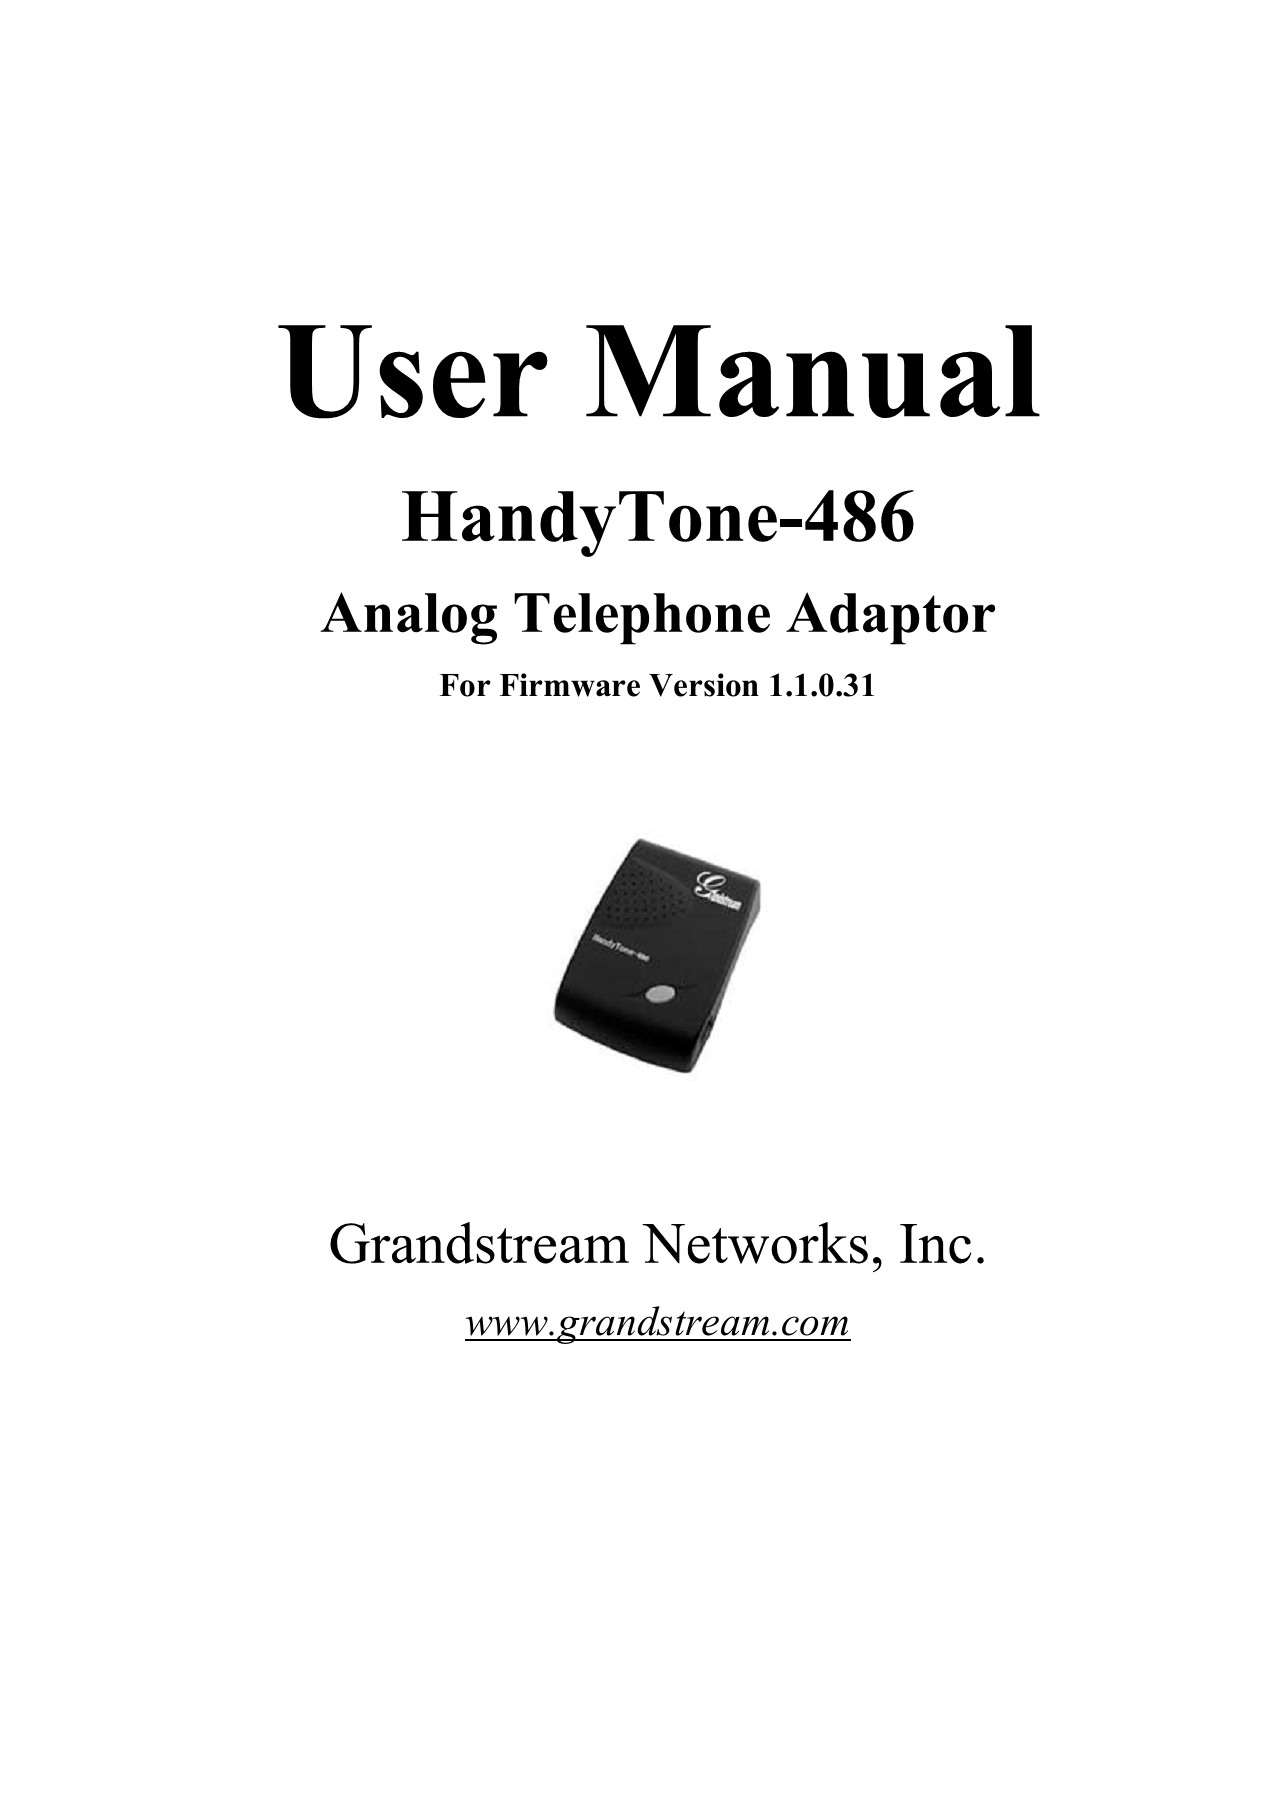 HT486 User Manual 1 1 0 31 - Grandstream Networks Pages 1